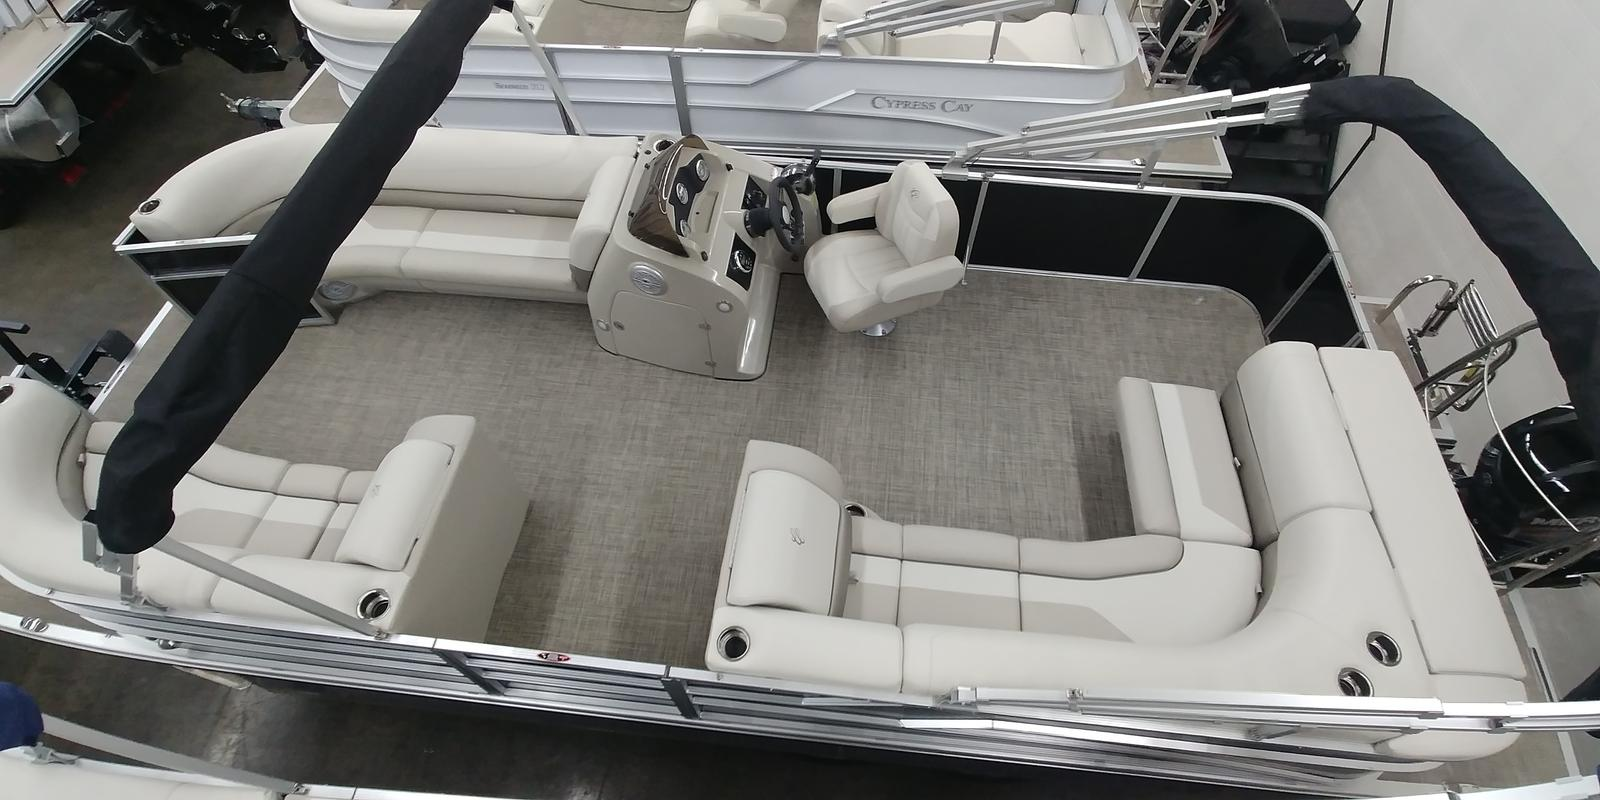 2019 Cypress Cay boat for sale, model of the boat is 232 Seabreeze CST & Image # 2 of 5